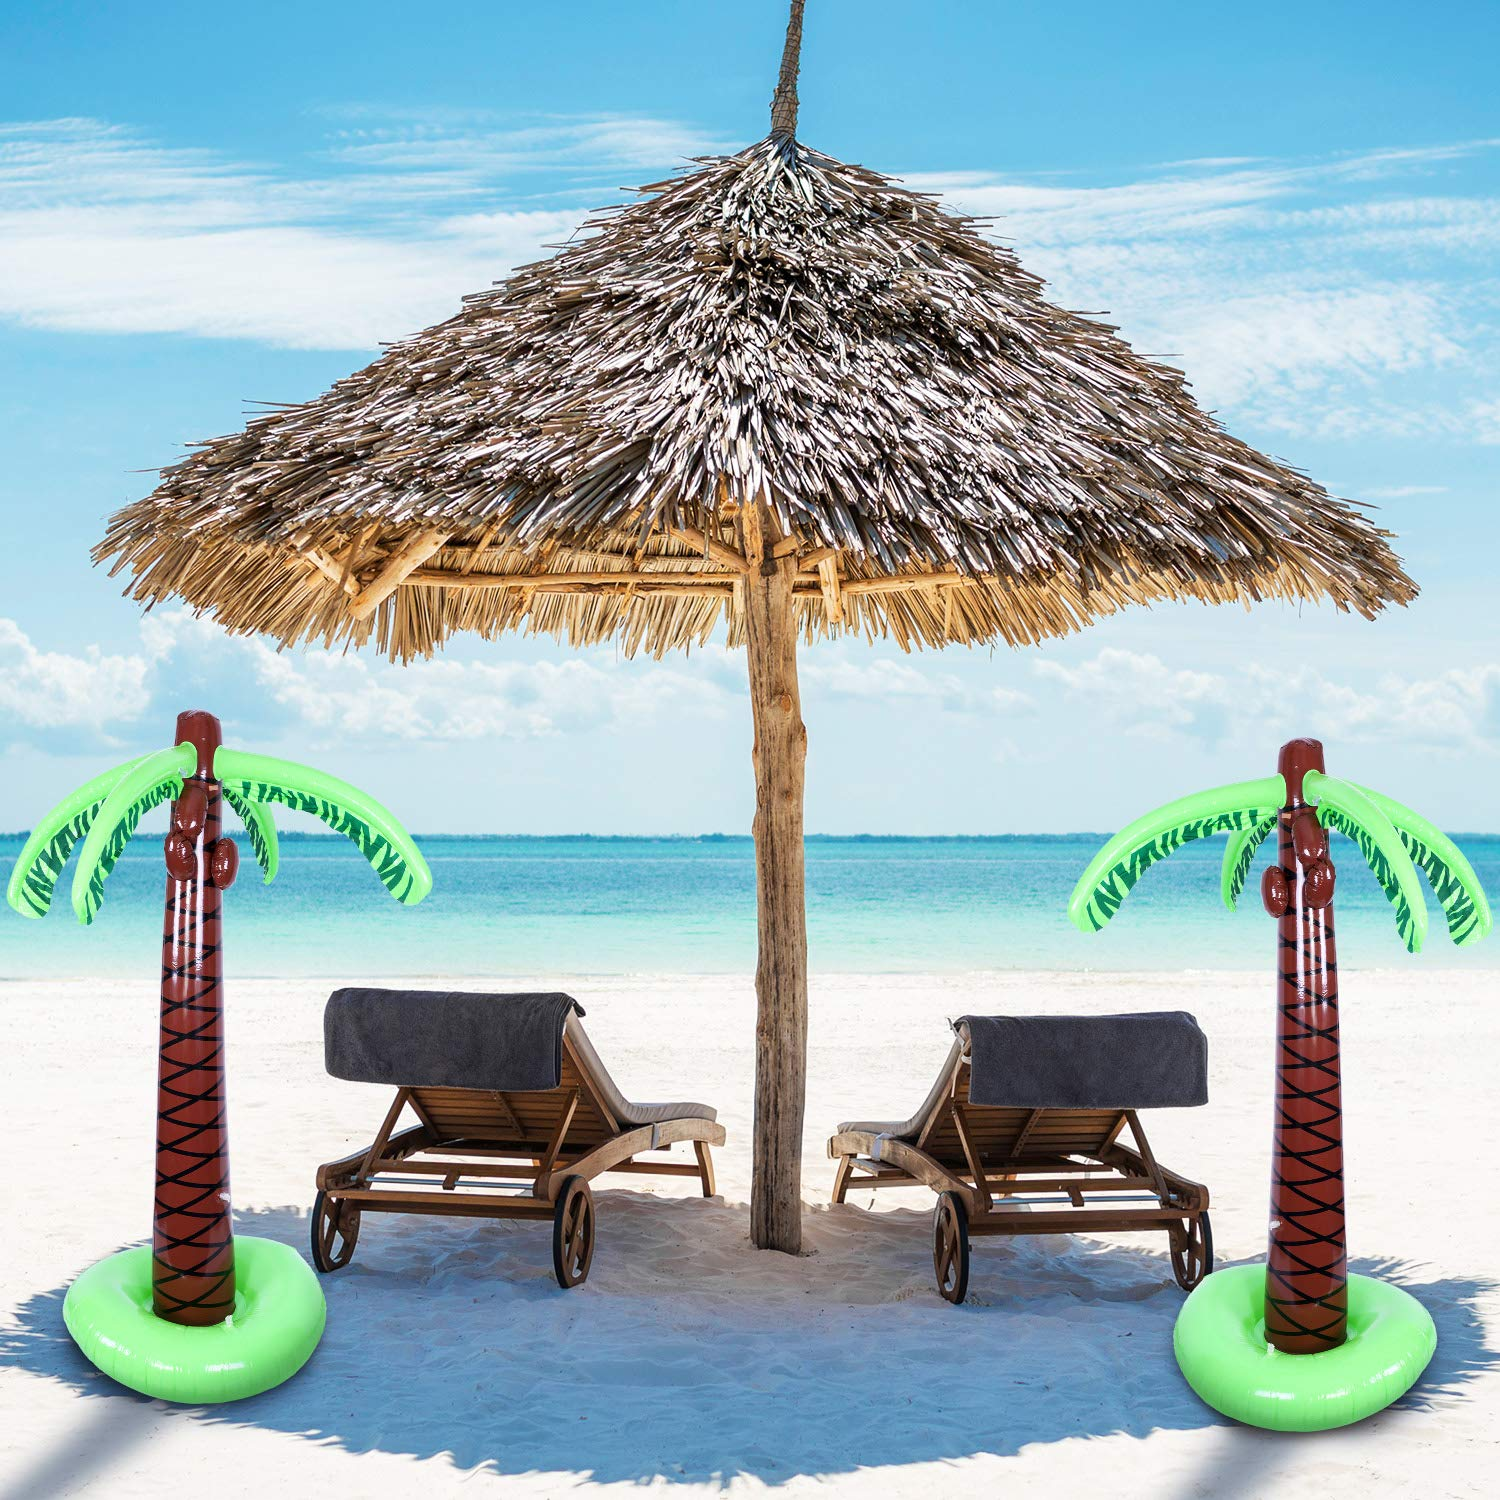 67 Inches, 1 Pack TecUnite Inflatable Palm Trees Jumbo Coconut Trees Beach Backdrop Favor for Hawaiian Luau Party Decoration Accessory